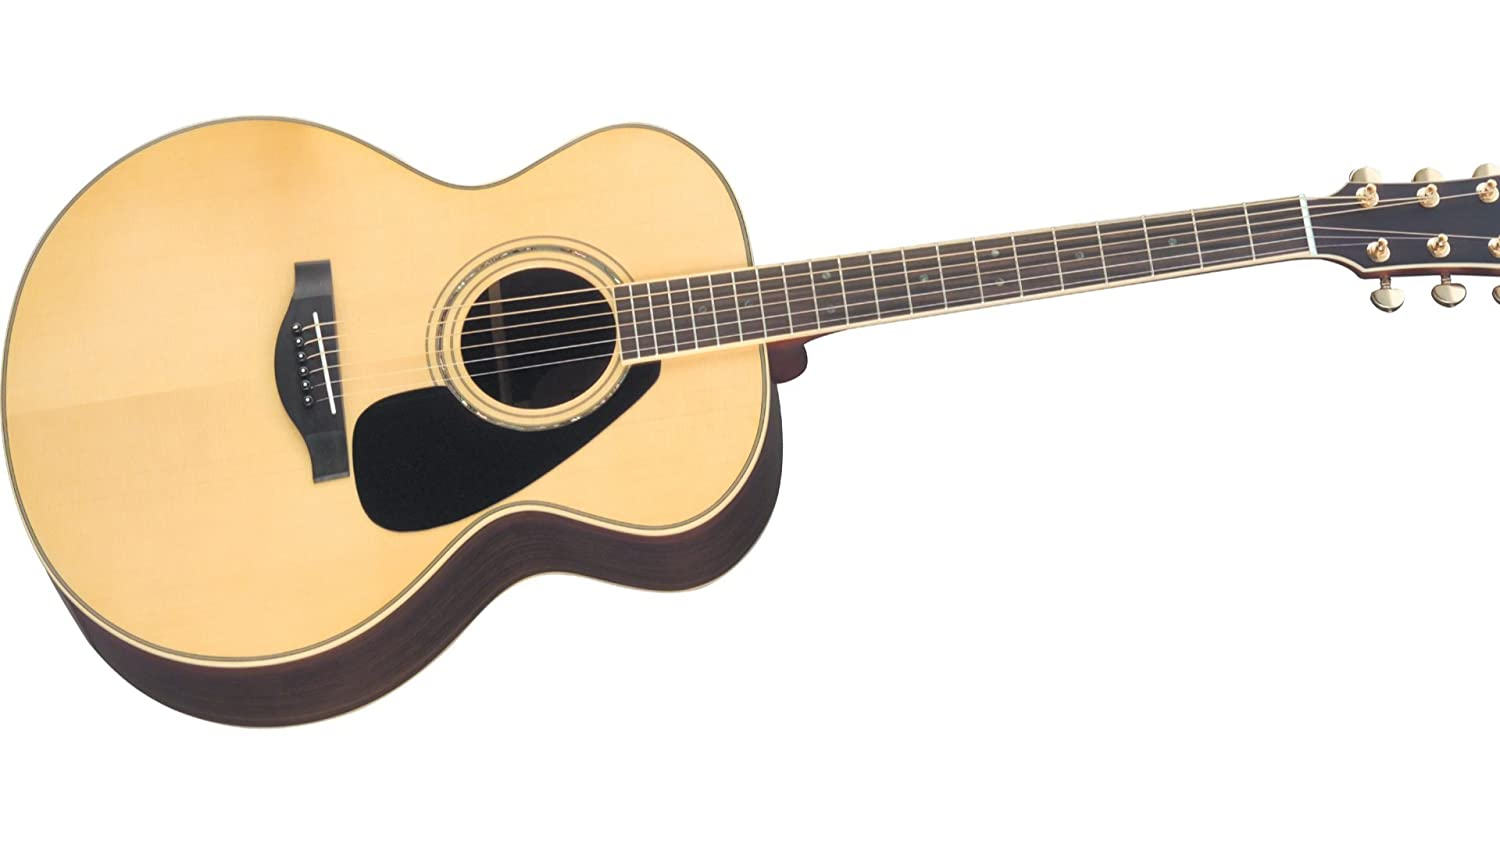 Amazon.com: Yamaha L-Series LJ16 Jumbo Acoustic-Electric Guitar with Gig Bag - Natural: Musical Instruments